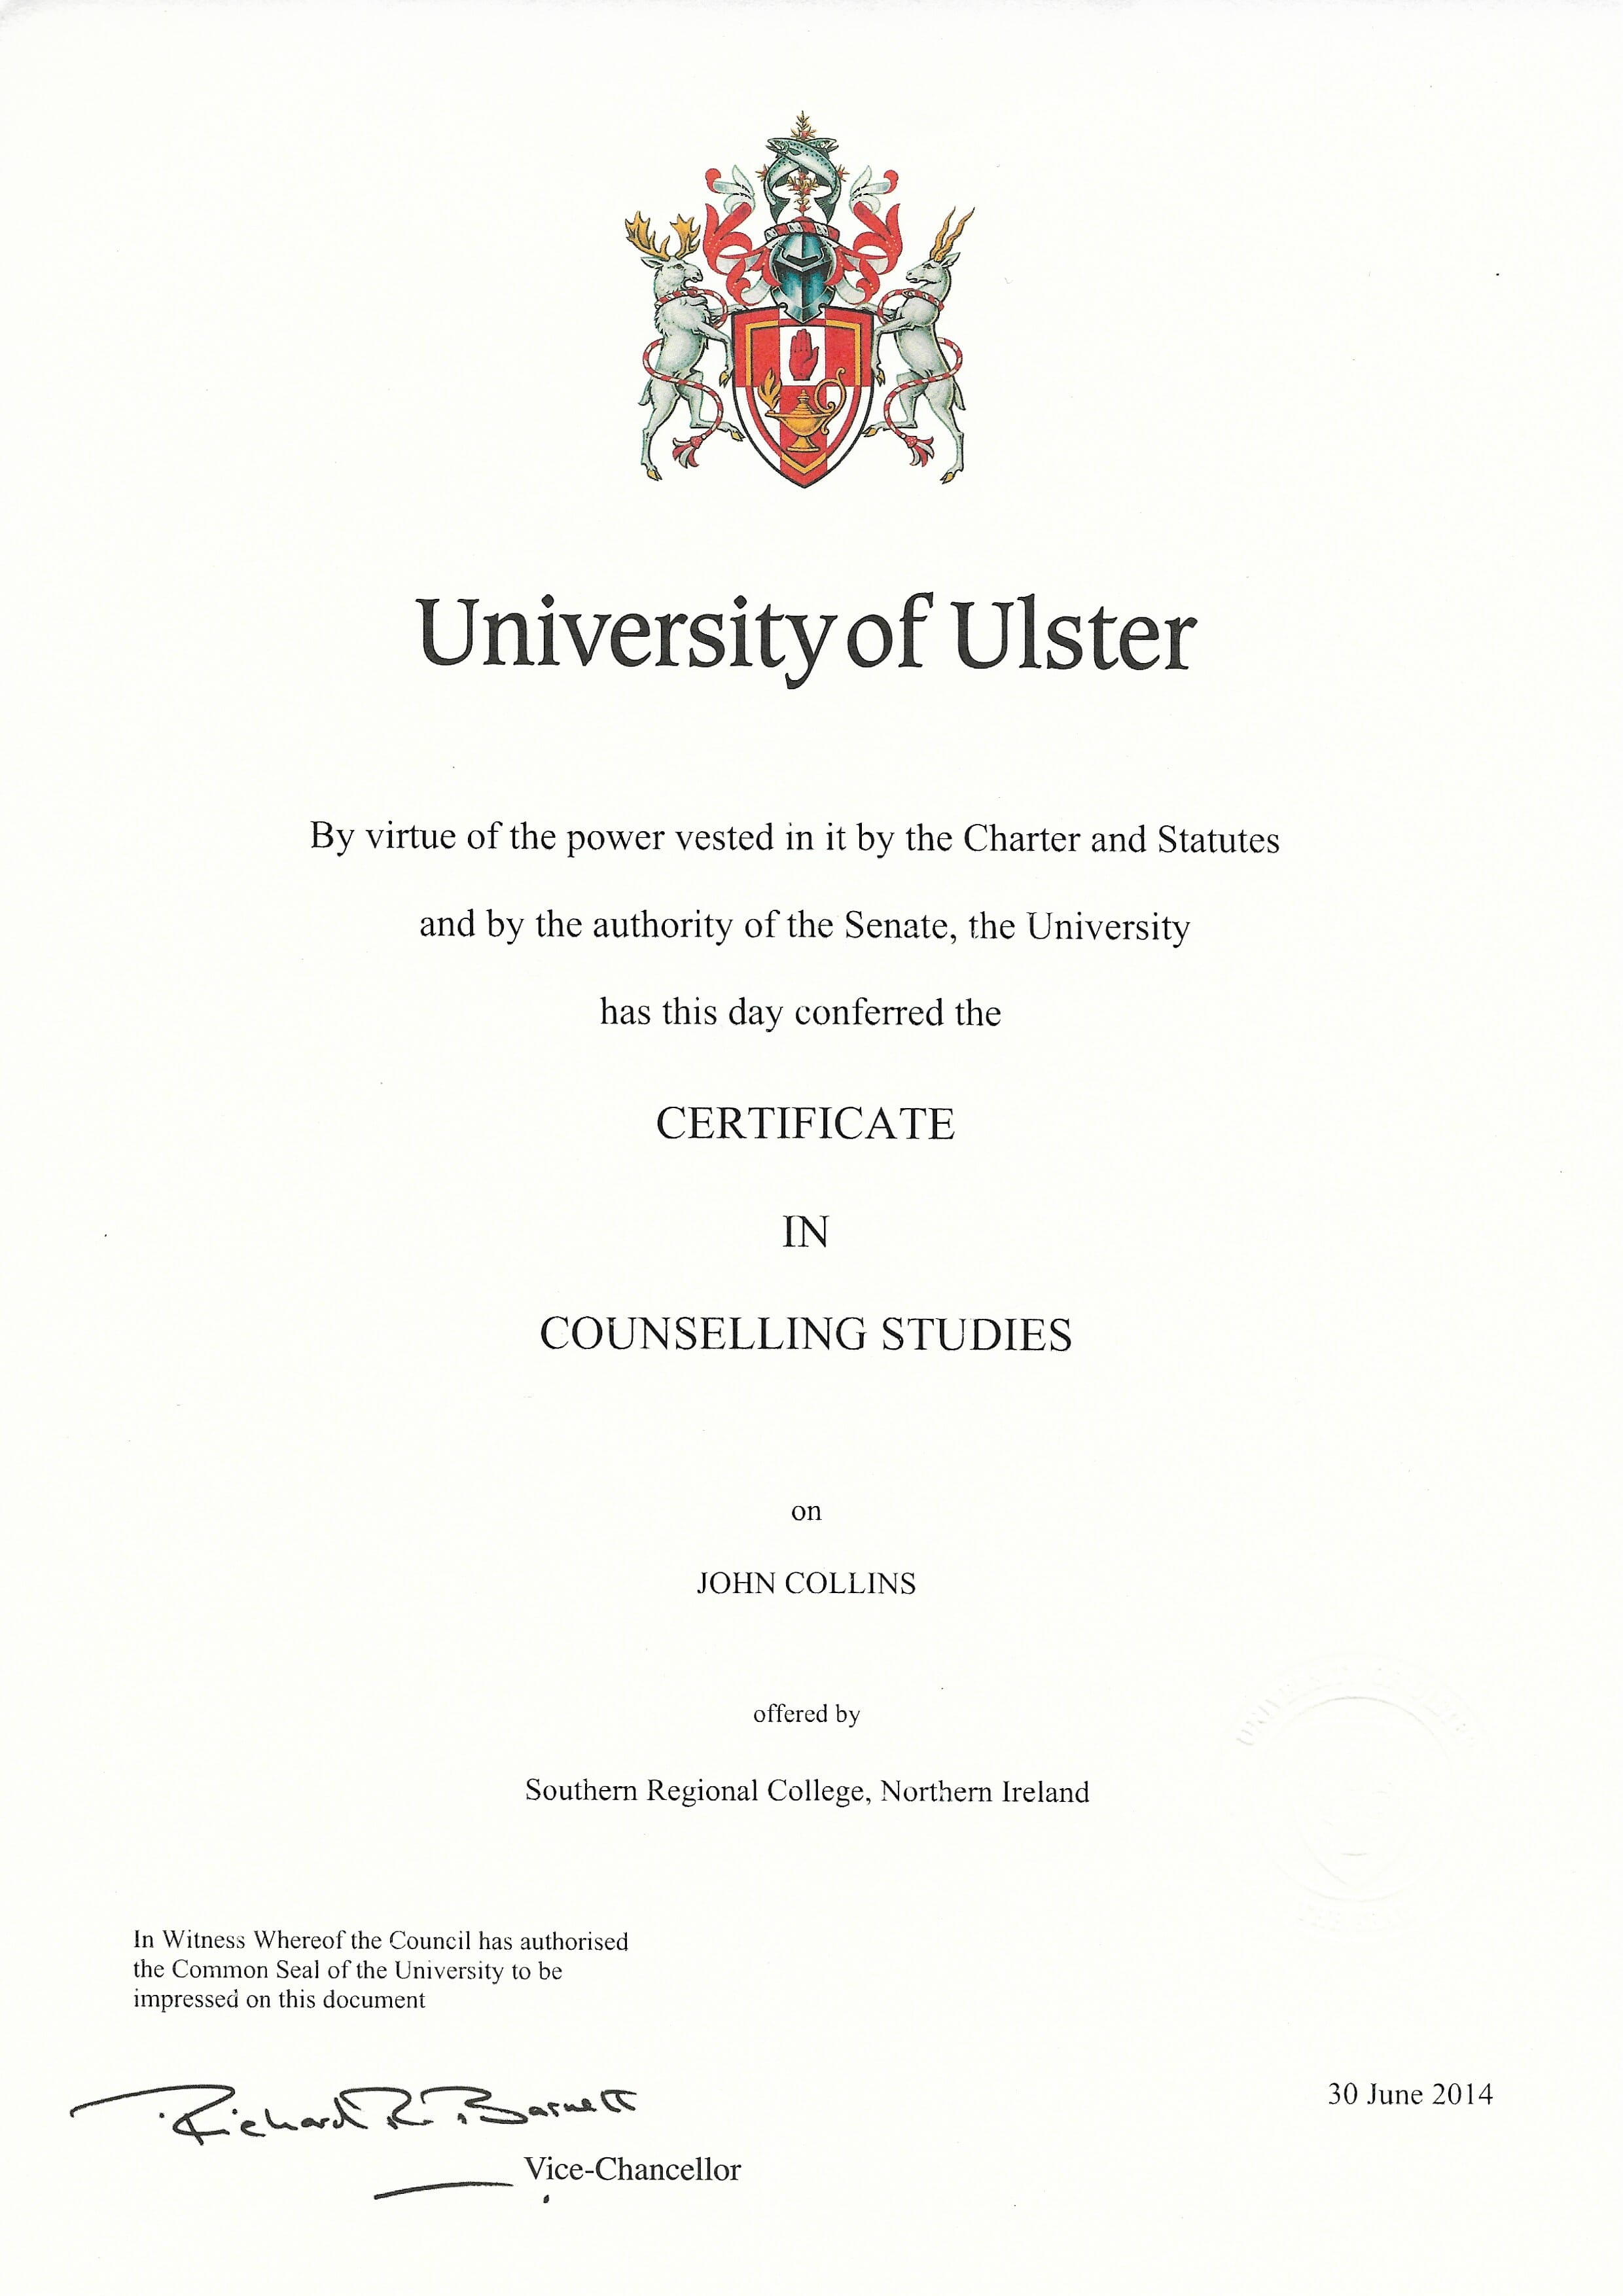 Certificate in Counselling Studies